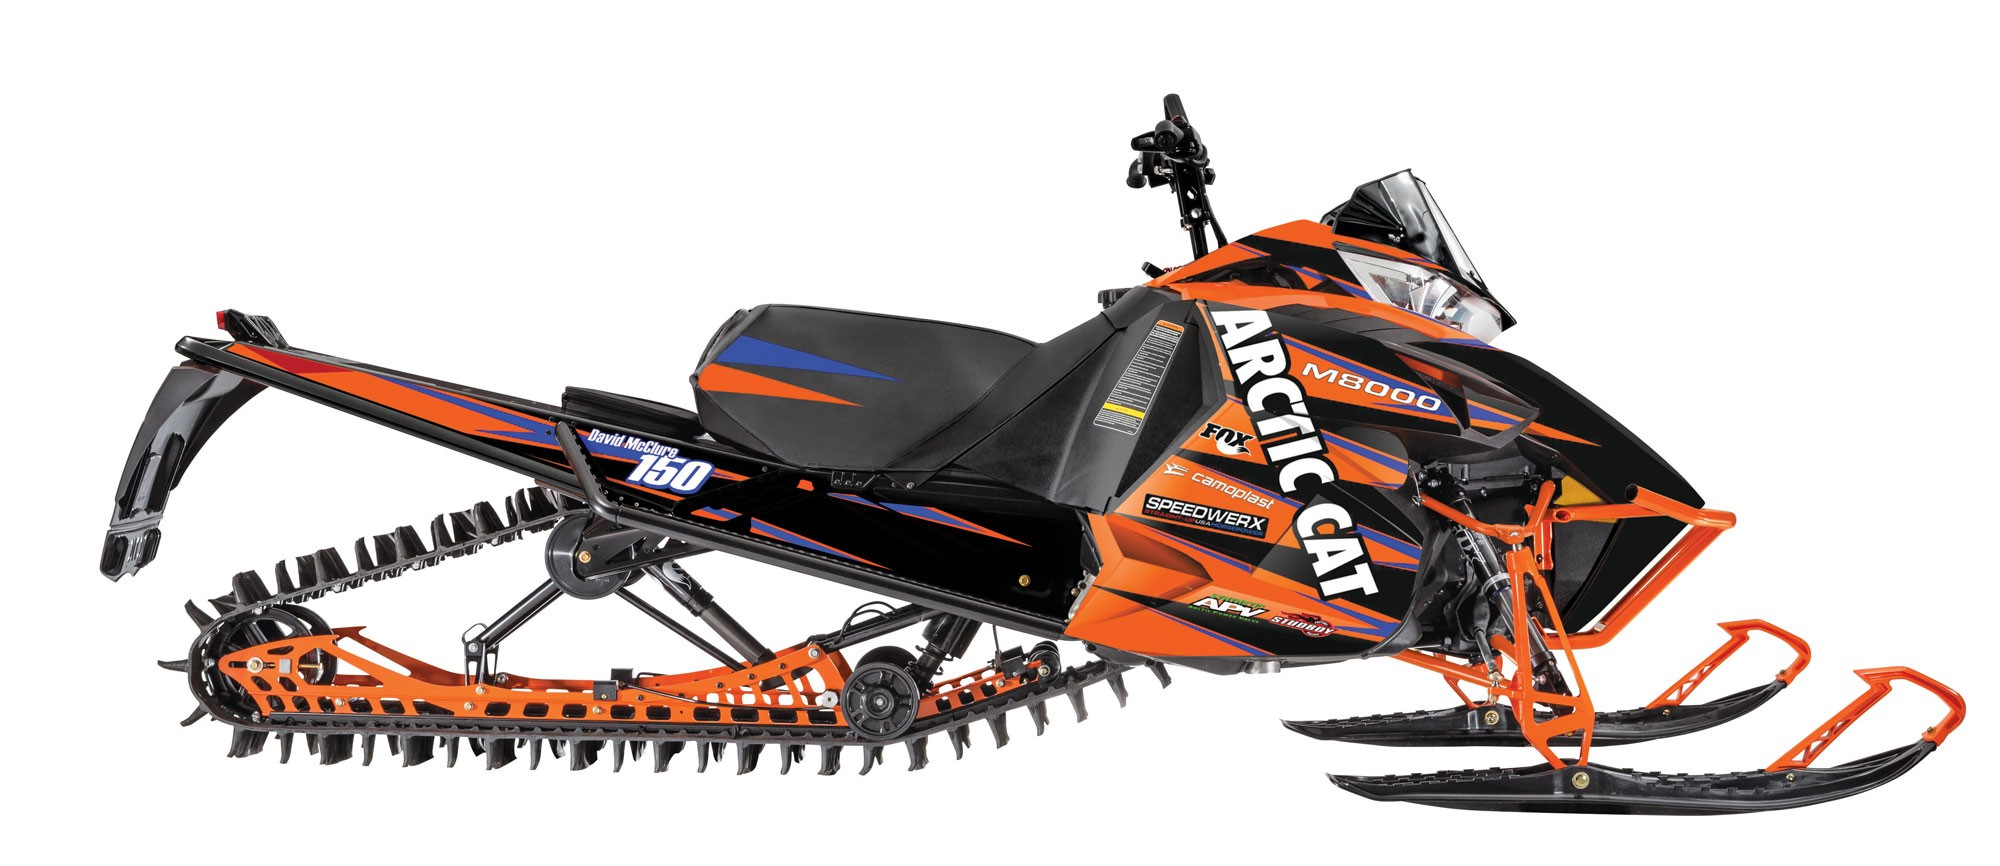 Yamaha Snowmobile Rumors submited images.